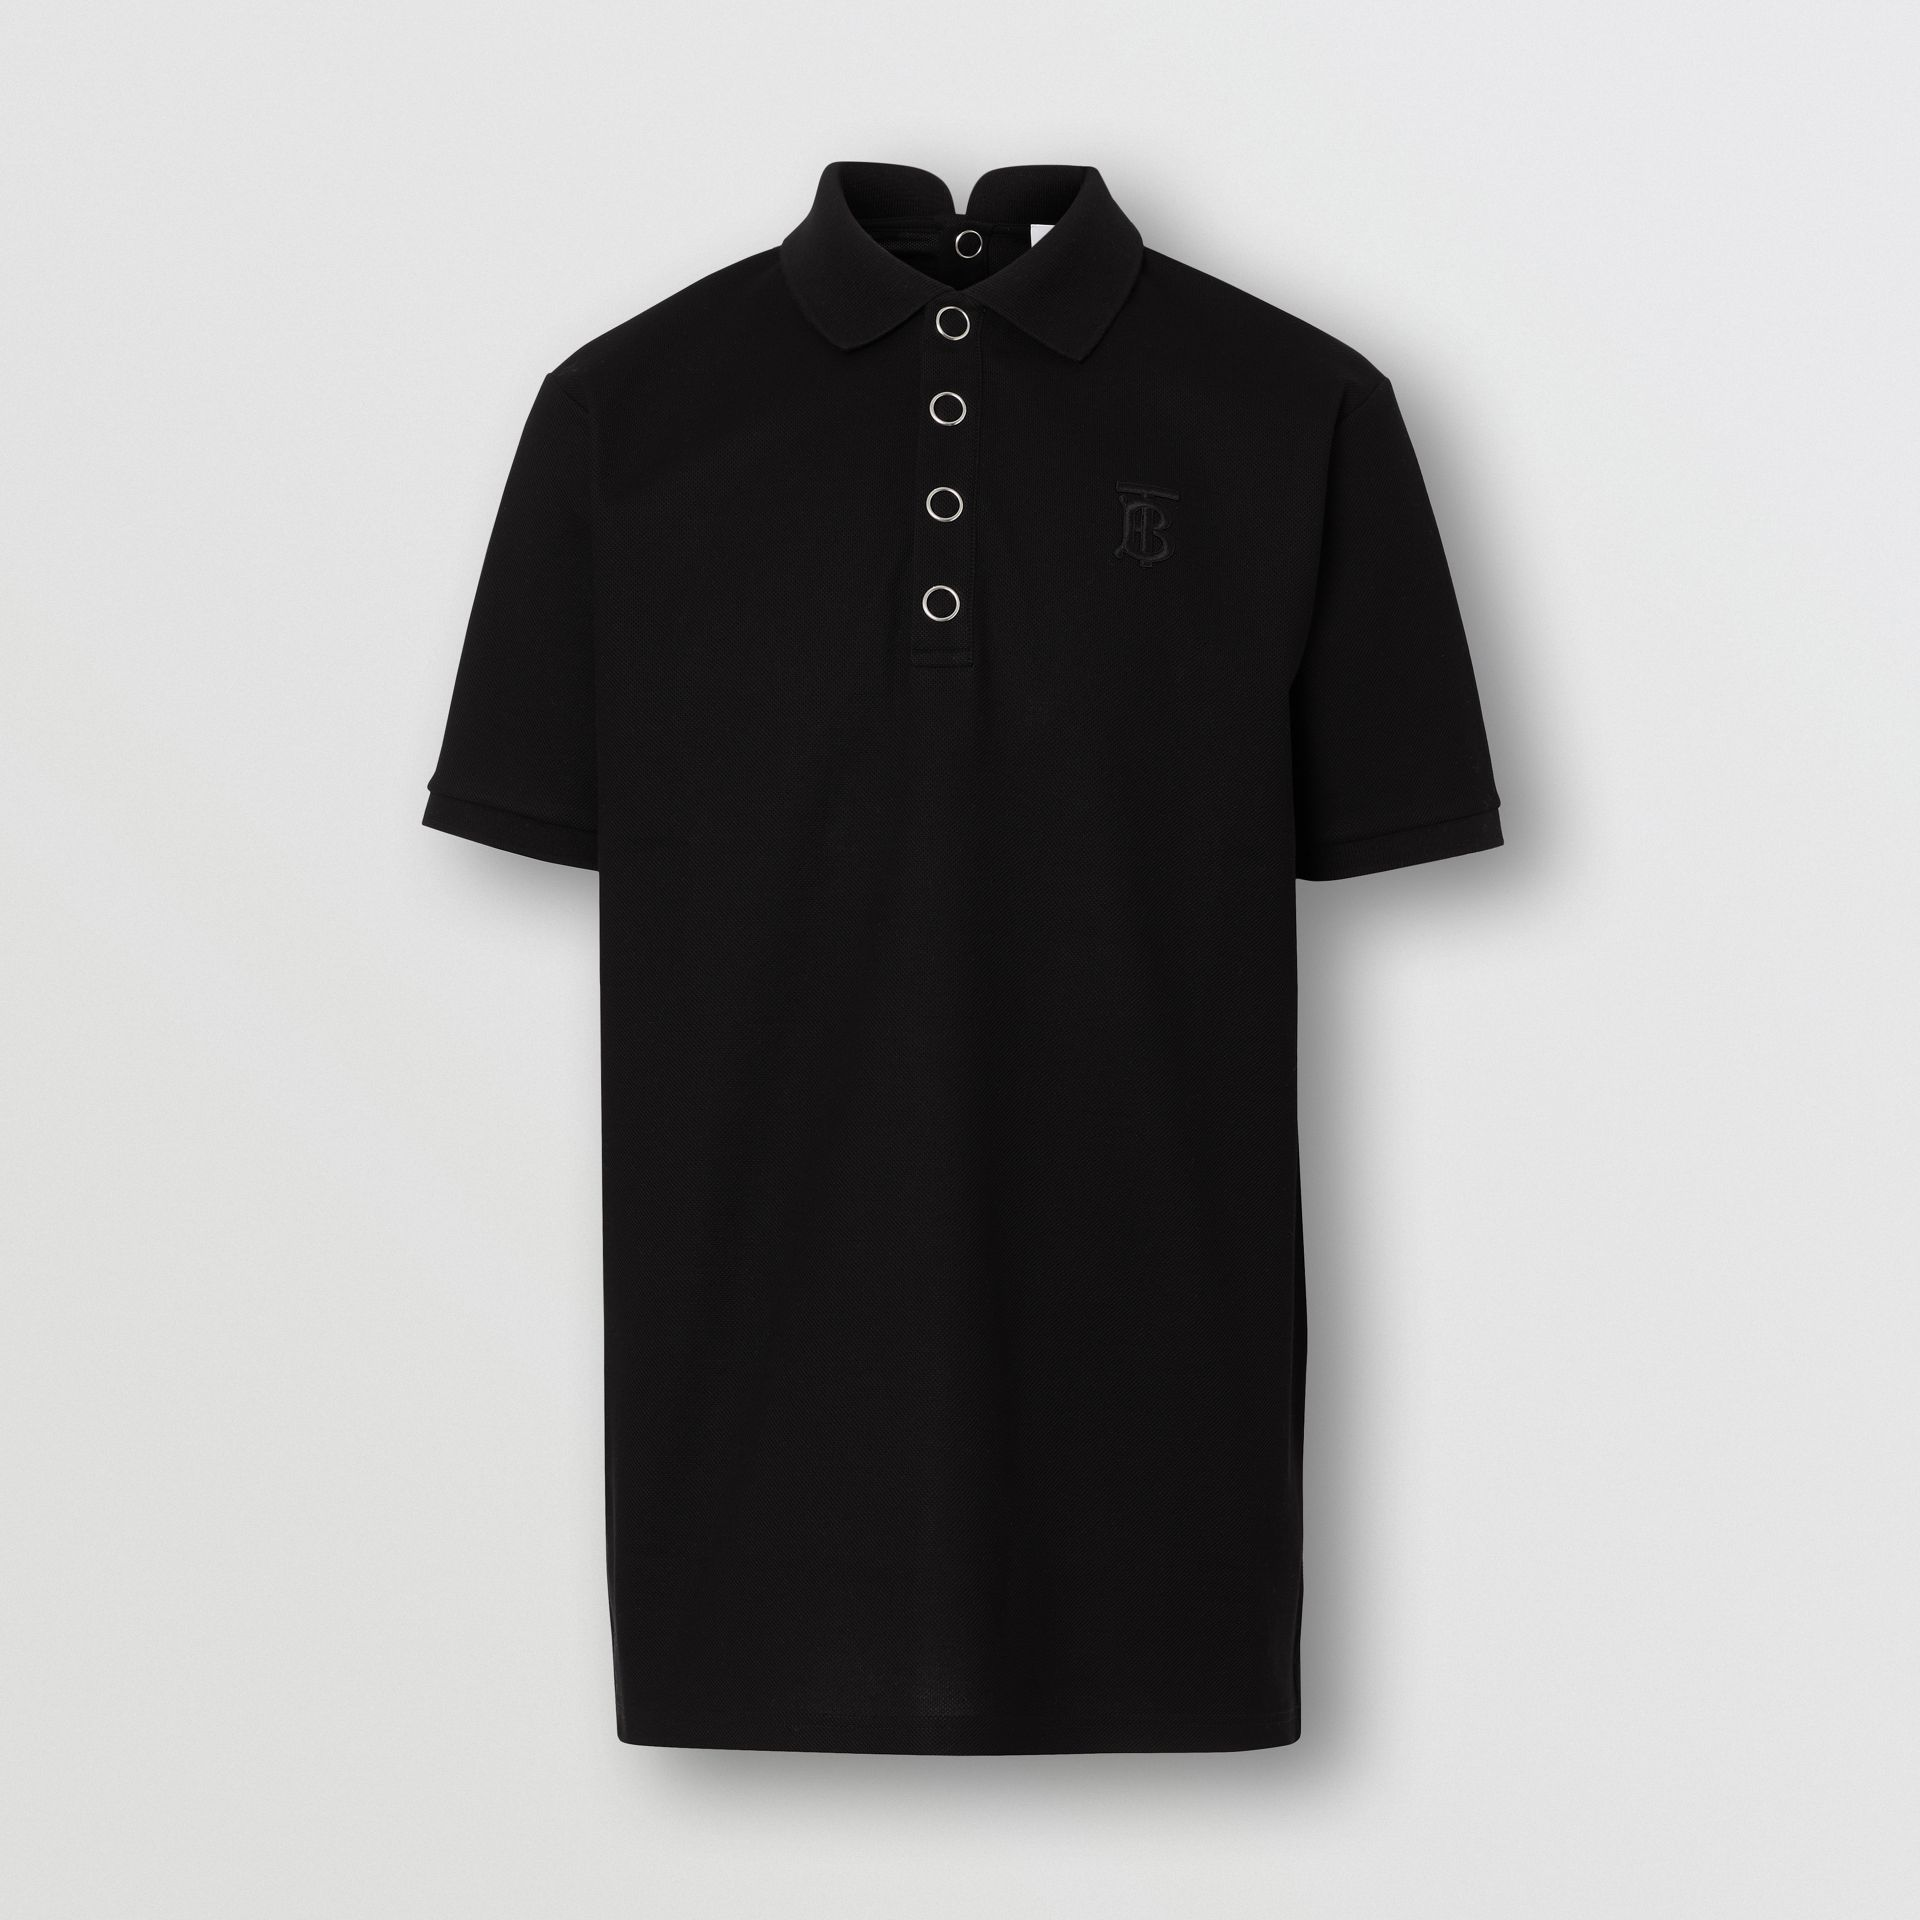 Monogram Motif Cotton Piqué Polo Shirt in Black | Burberry United States - gallery image 3